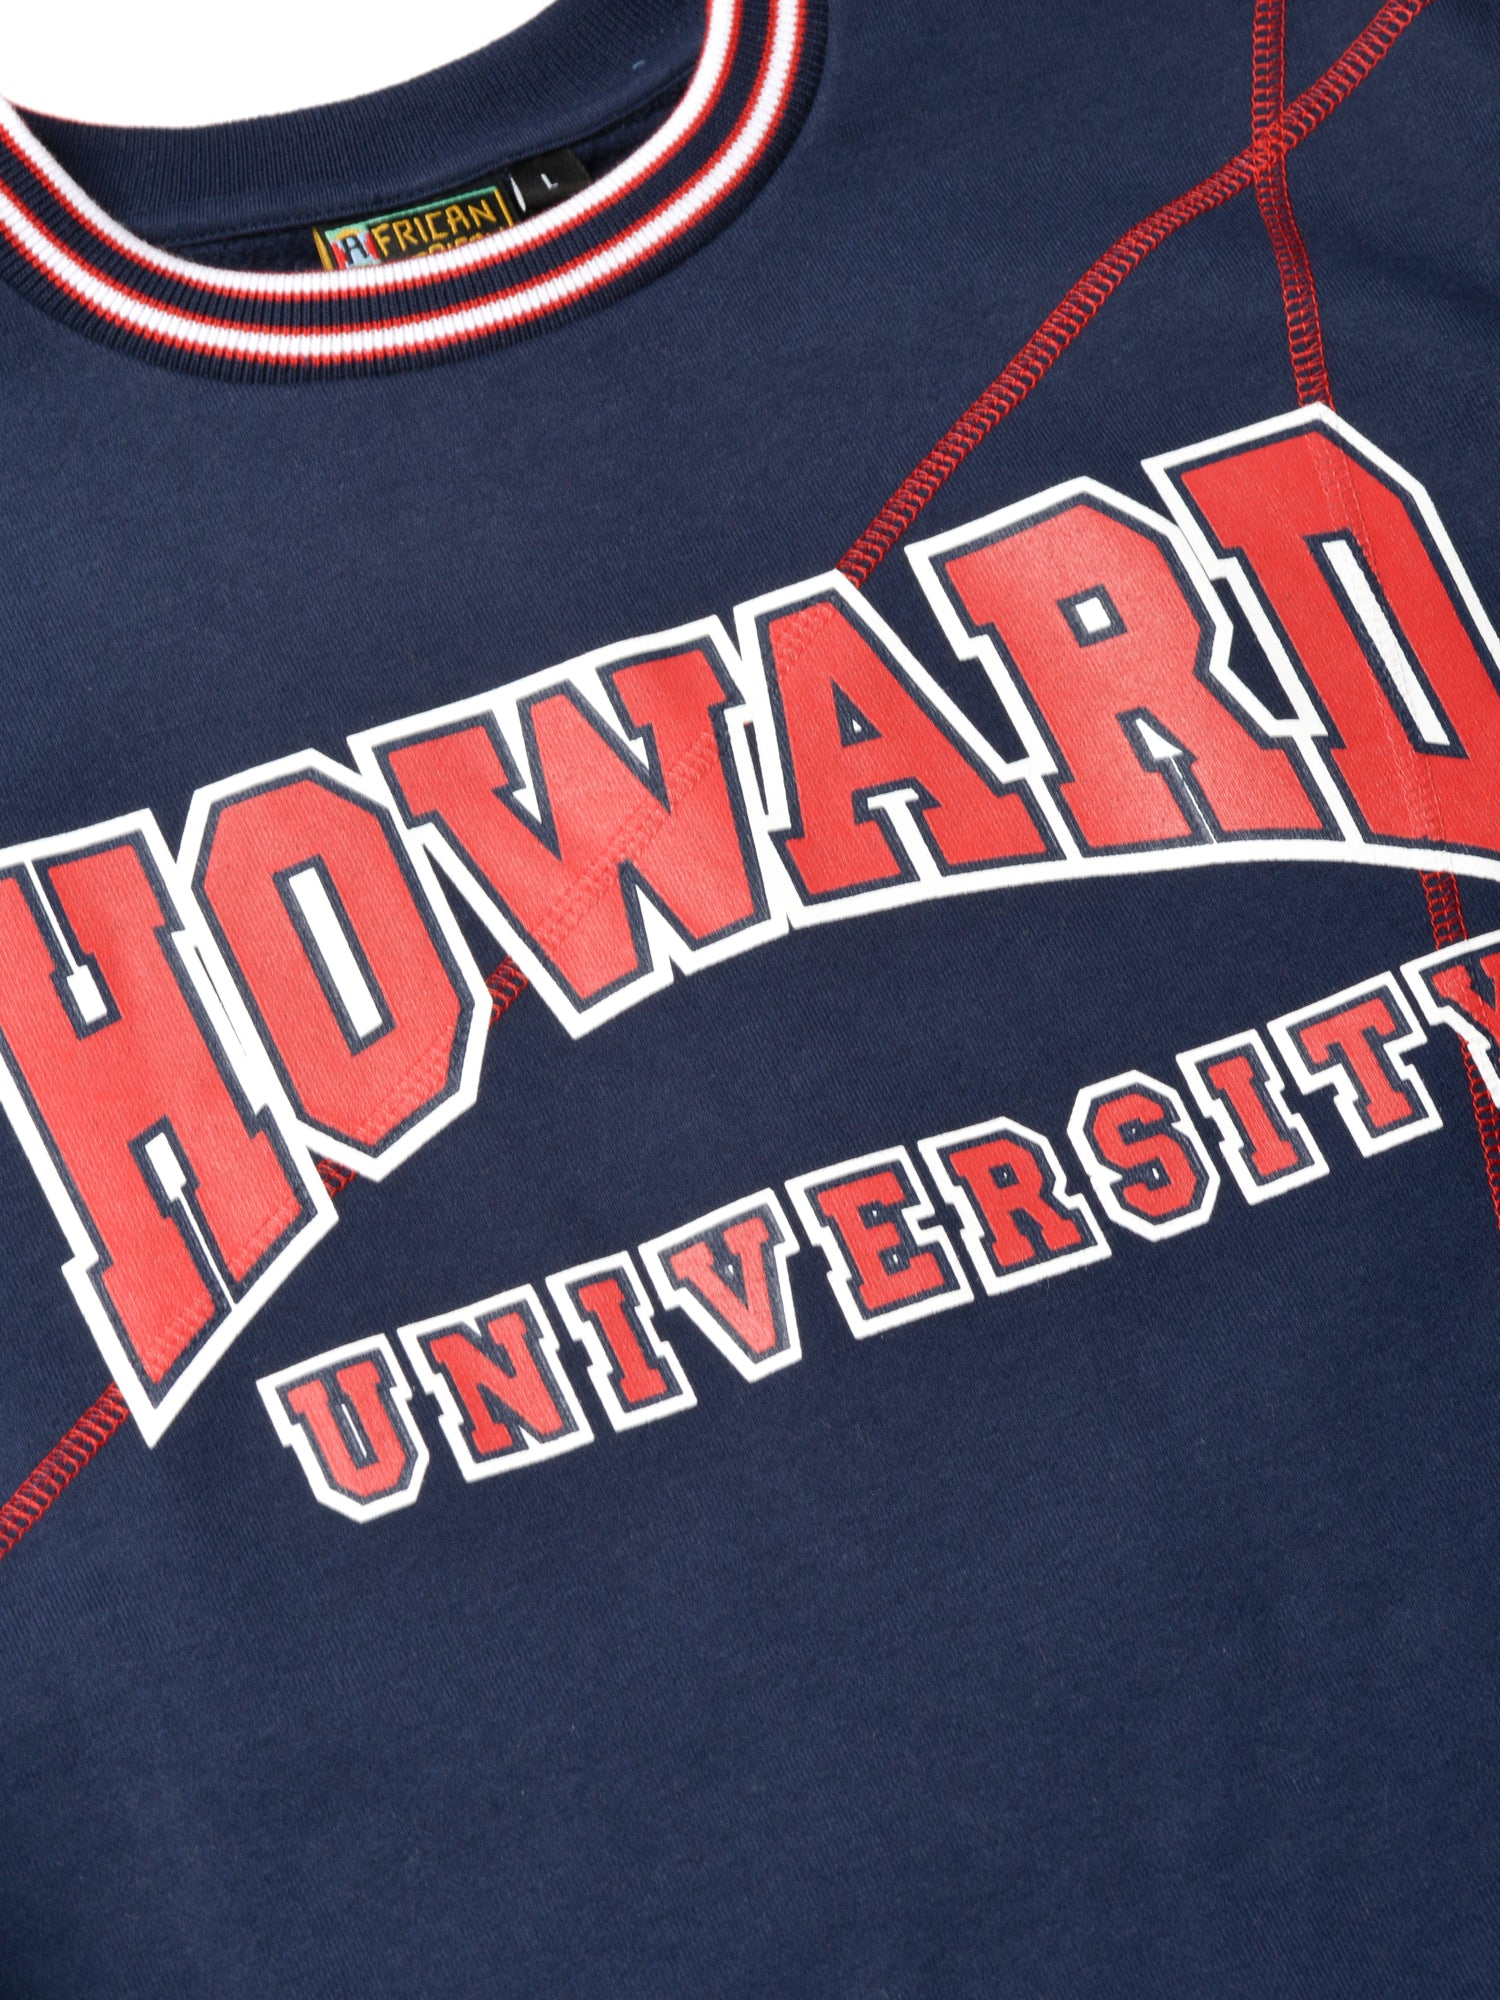 los angeles dd426 a5a8b HOWARD UNIVERSITY - AACA Clothing